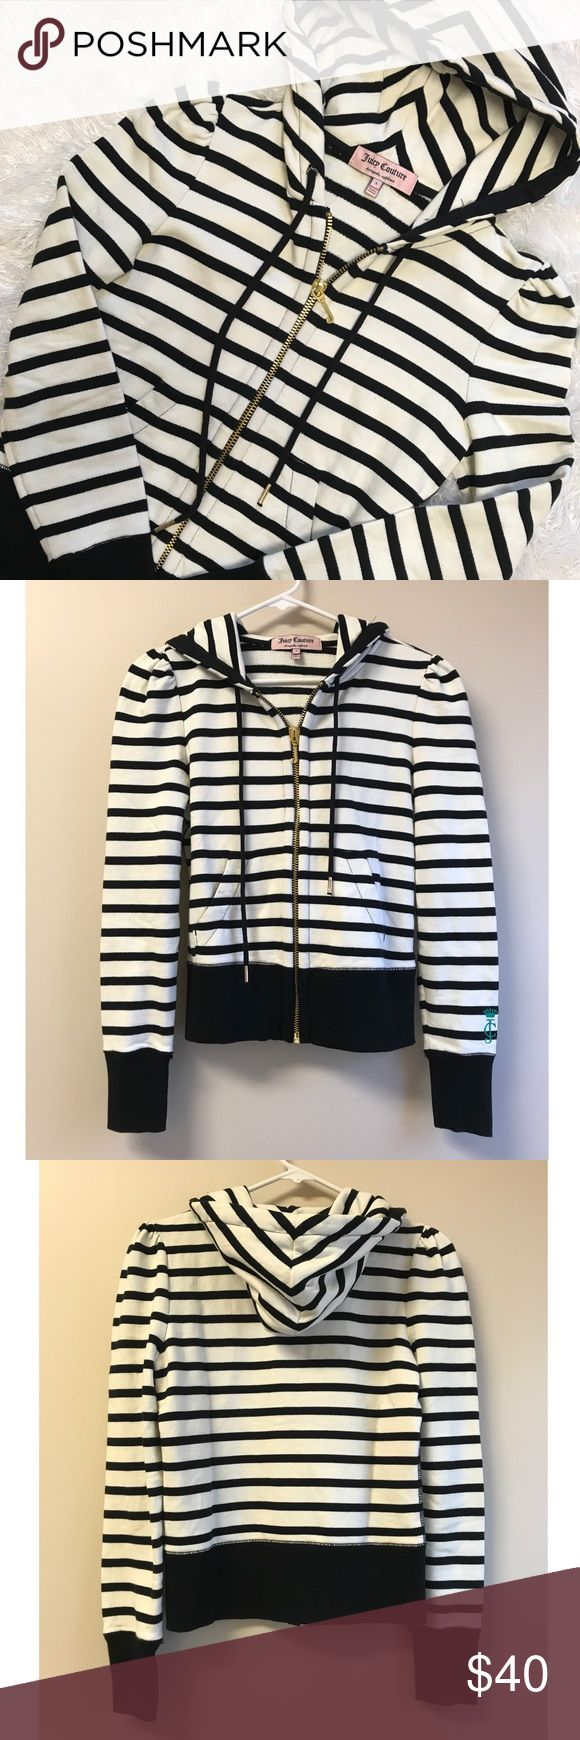 NWOT Juicy Couture 🖤 Striped Zip Up Hoodie Never worn Juicy Couture Black and White Striped zip up hoodie. Thick material perfect for fall or winter. Thicker than a normal zip up. Gold zipper and accents. Juicy Couture Sweaters